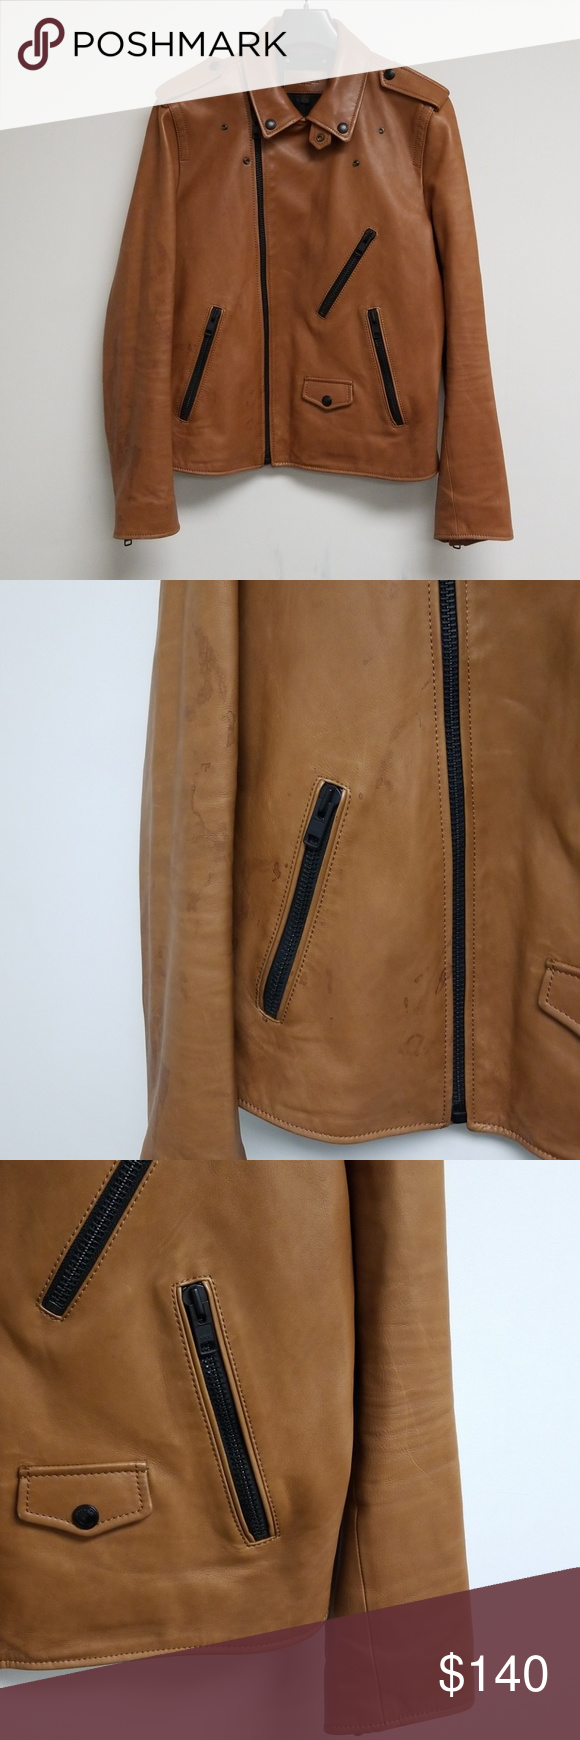 Coach Tan Cow Leather Zip Up Jacket Size M Jackets